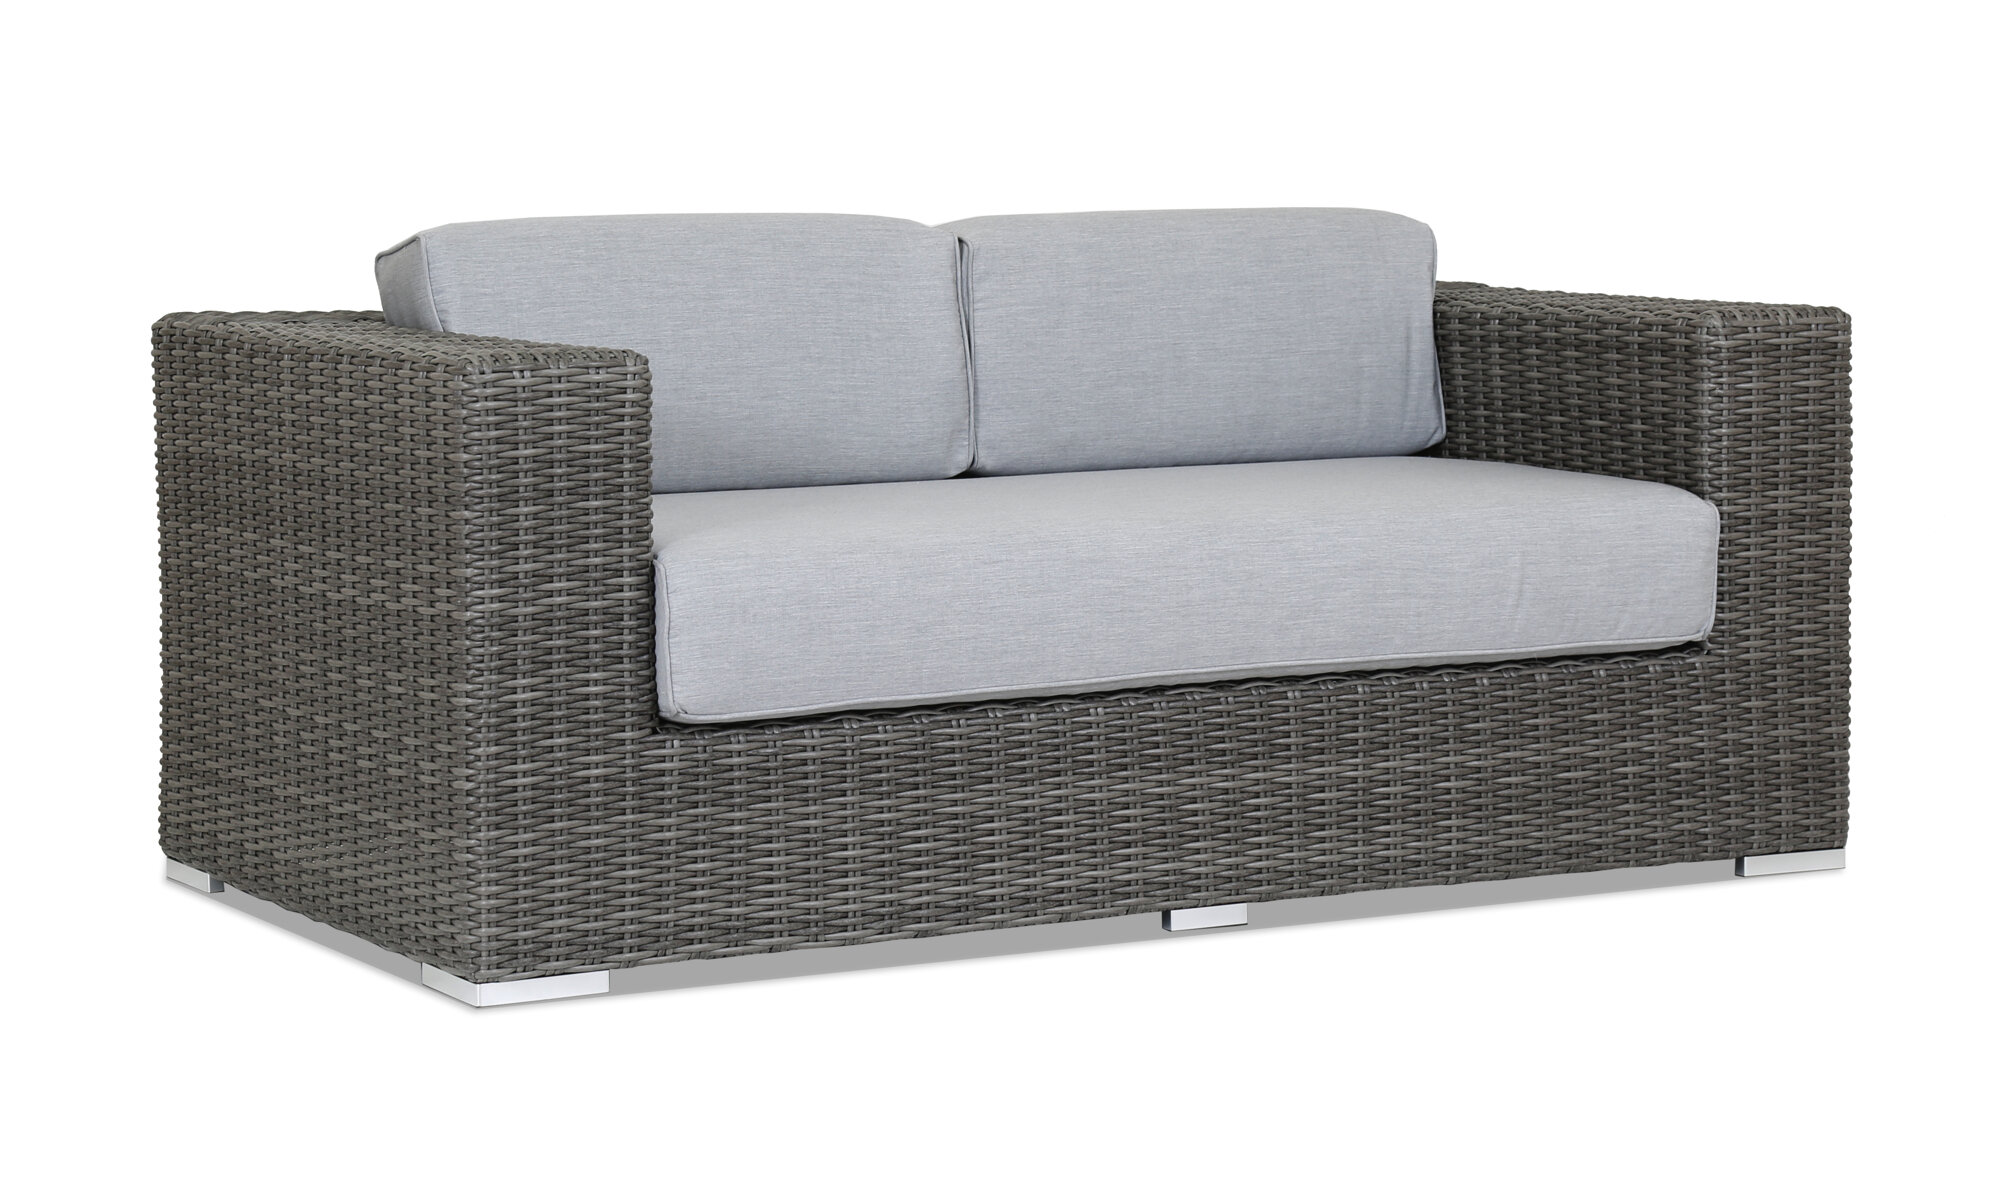 Emerald Ii Loveseat With Sunbrella Cushion Joss Main